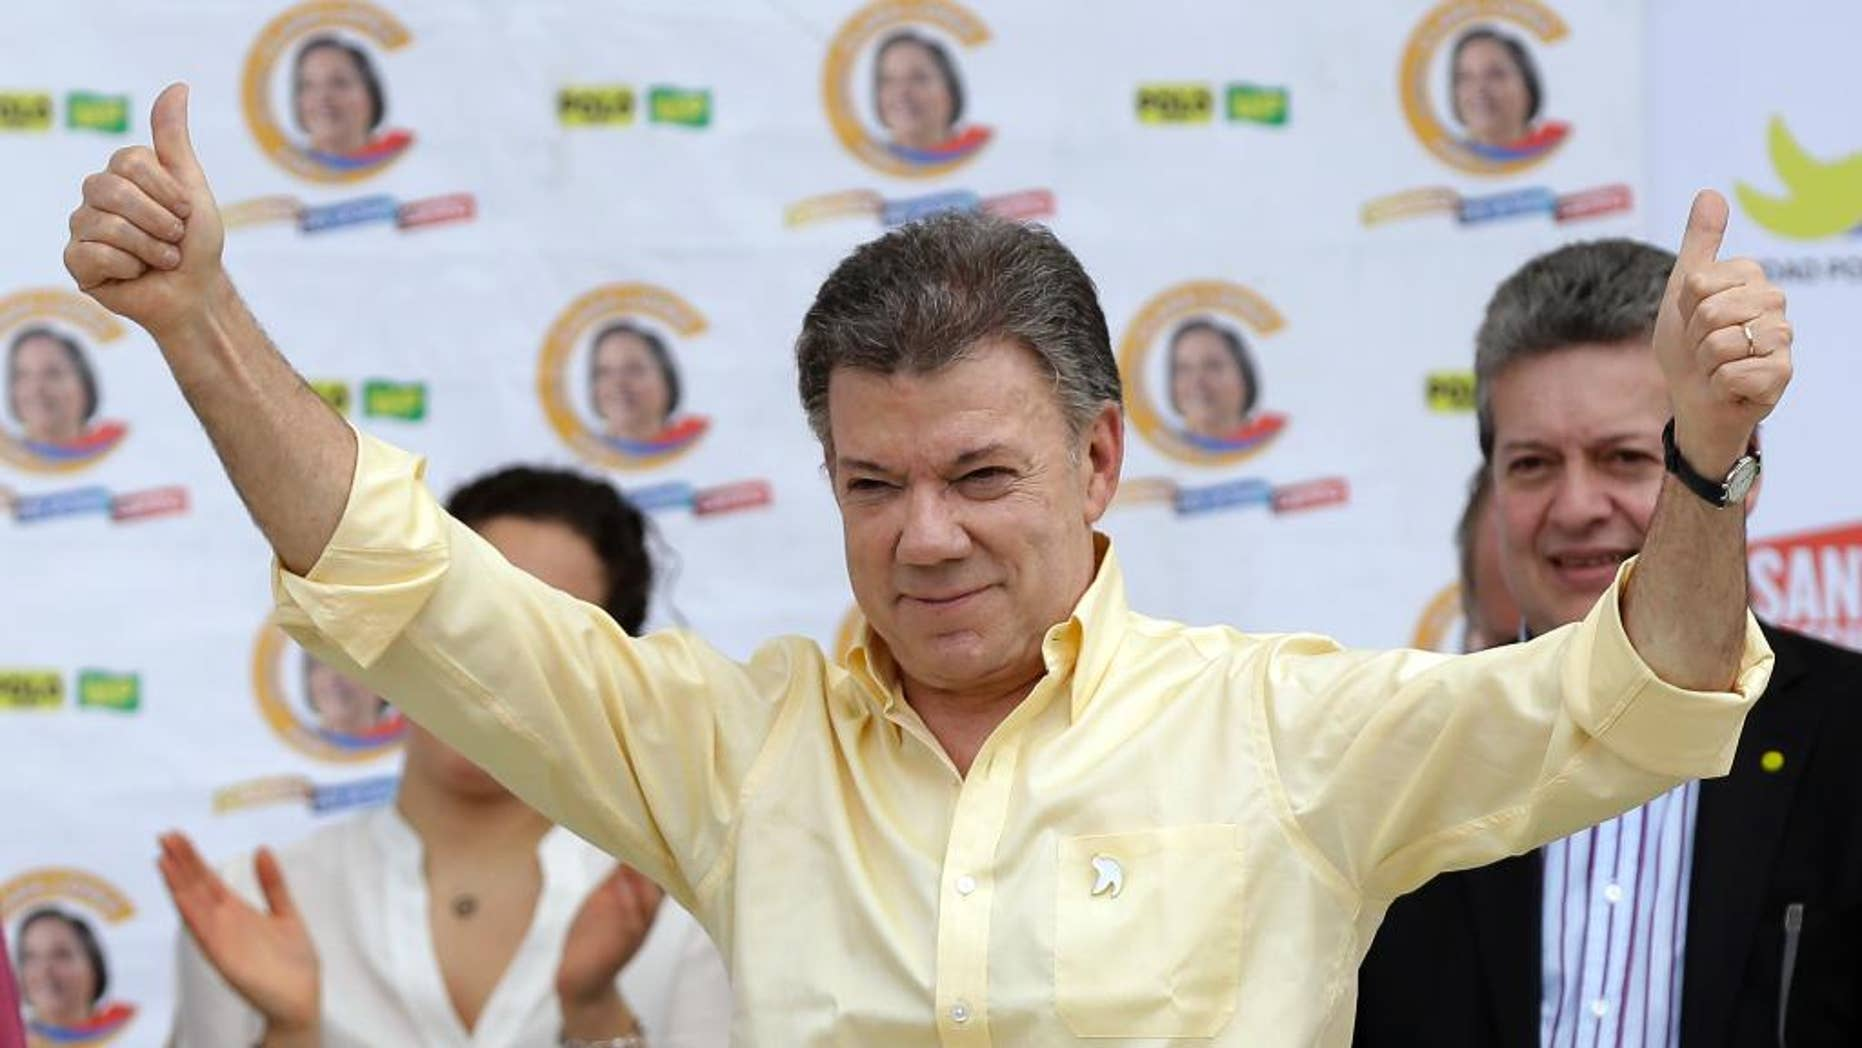 FILE - In this June 5, 2014 file photo, Colombia's President Juan Manuel Santos gives a thumbs up during a campaign event in Bogota, Colombia. A corruption scandal that has spread across Latin America is inching closer to Santos amid new evidence on Monday, March 6, 2017 that suggests a Brazilian construction company paid $1 million for an opinion poll carried out during his re-election campaign. (AP Photo/Fernando Vergara, File)